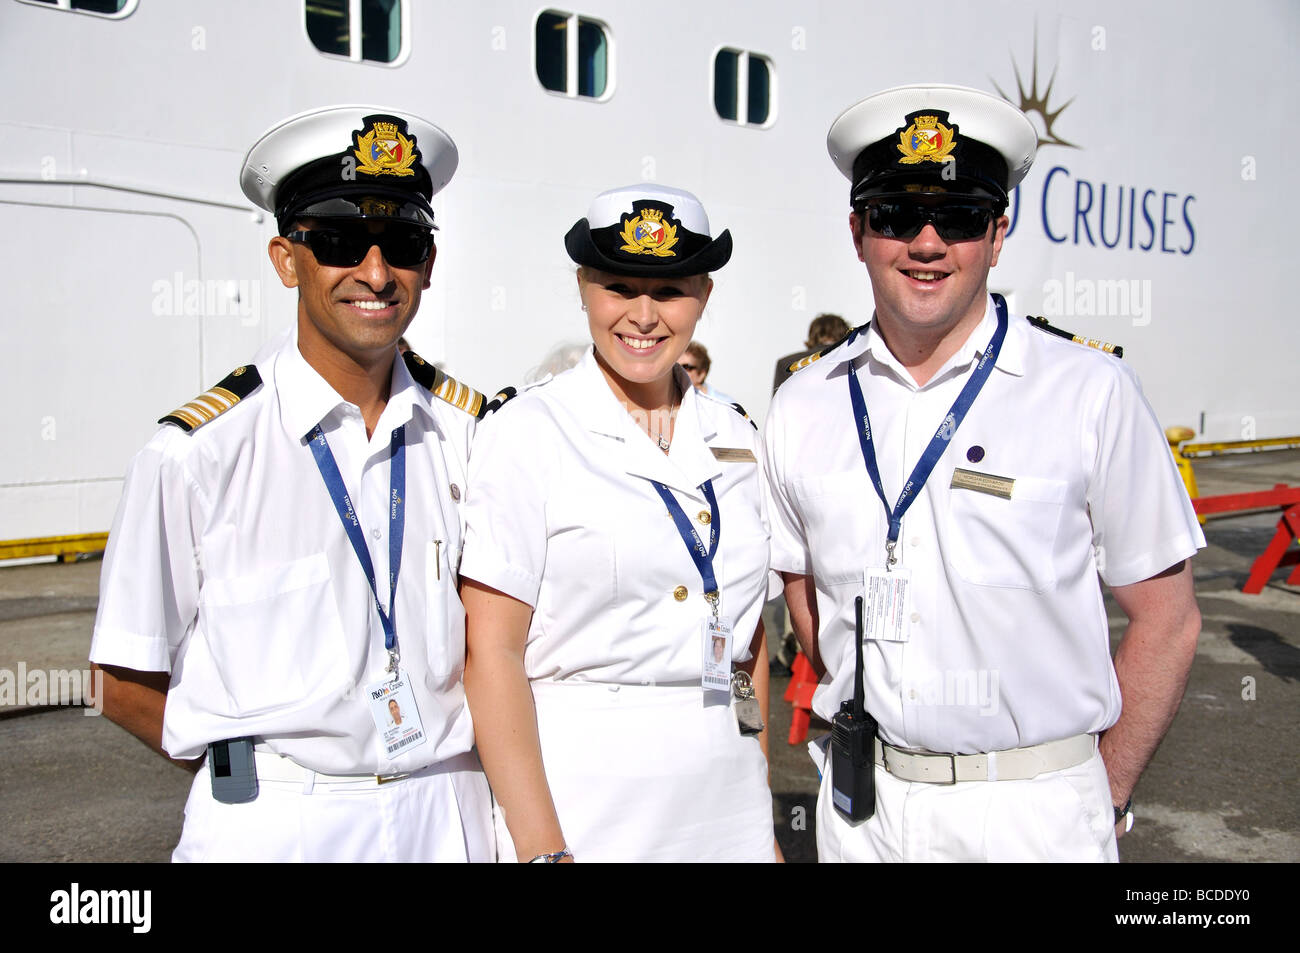 Officers From PampO Oceana Cruise Ship On Jetty Bergen